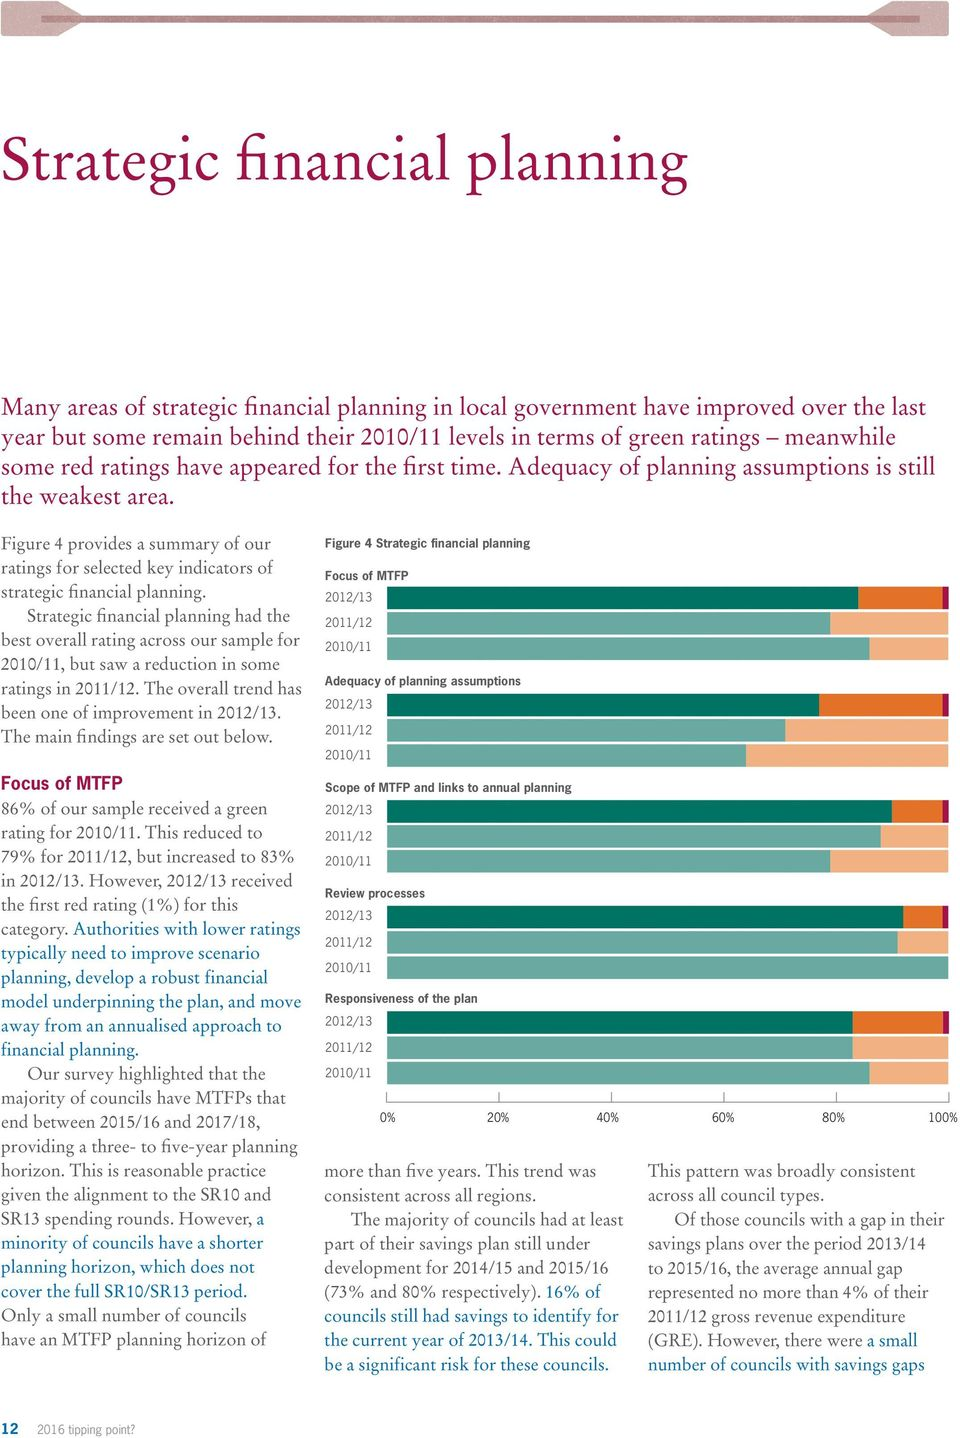 Figure 4 provides a summary of our ratings for selected key indicators of strategic financial planning.